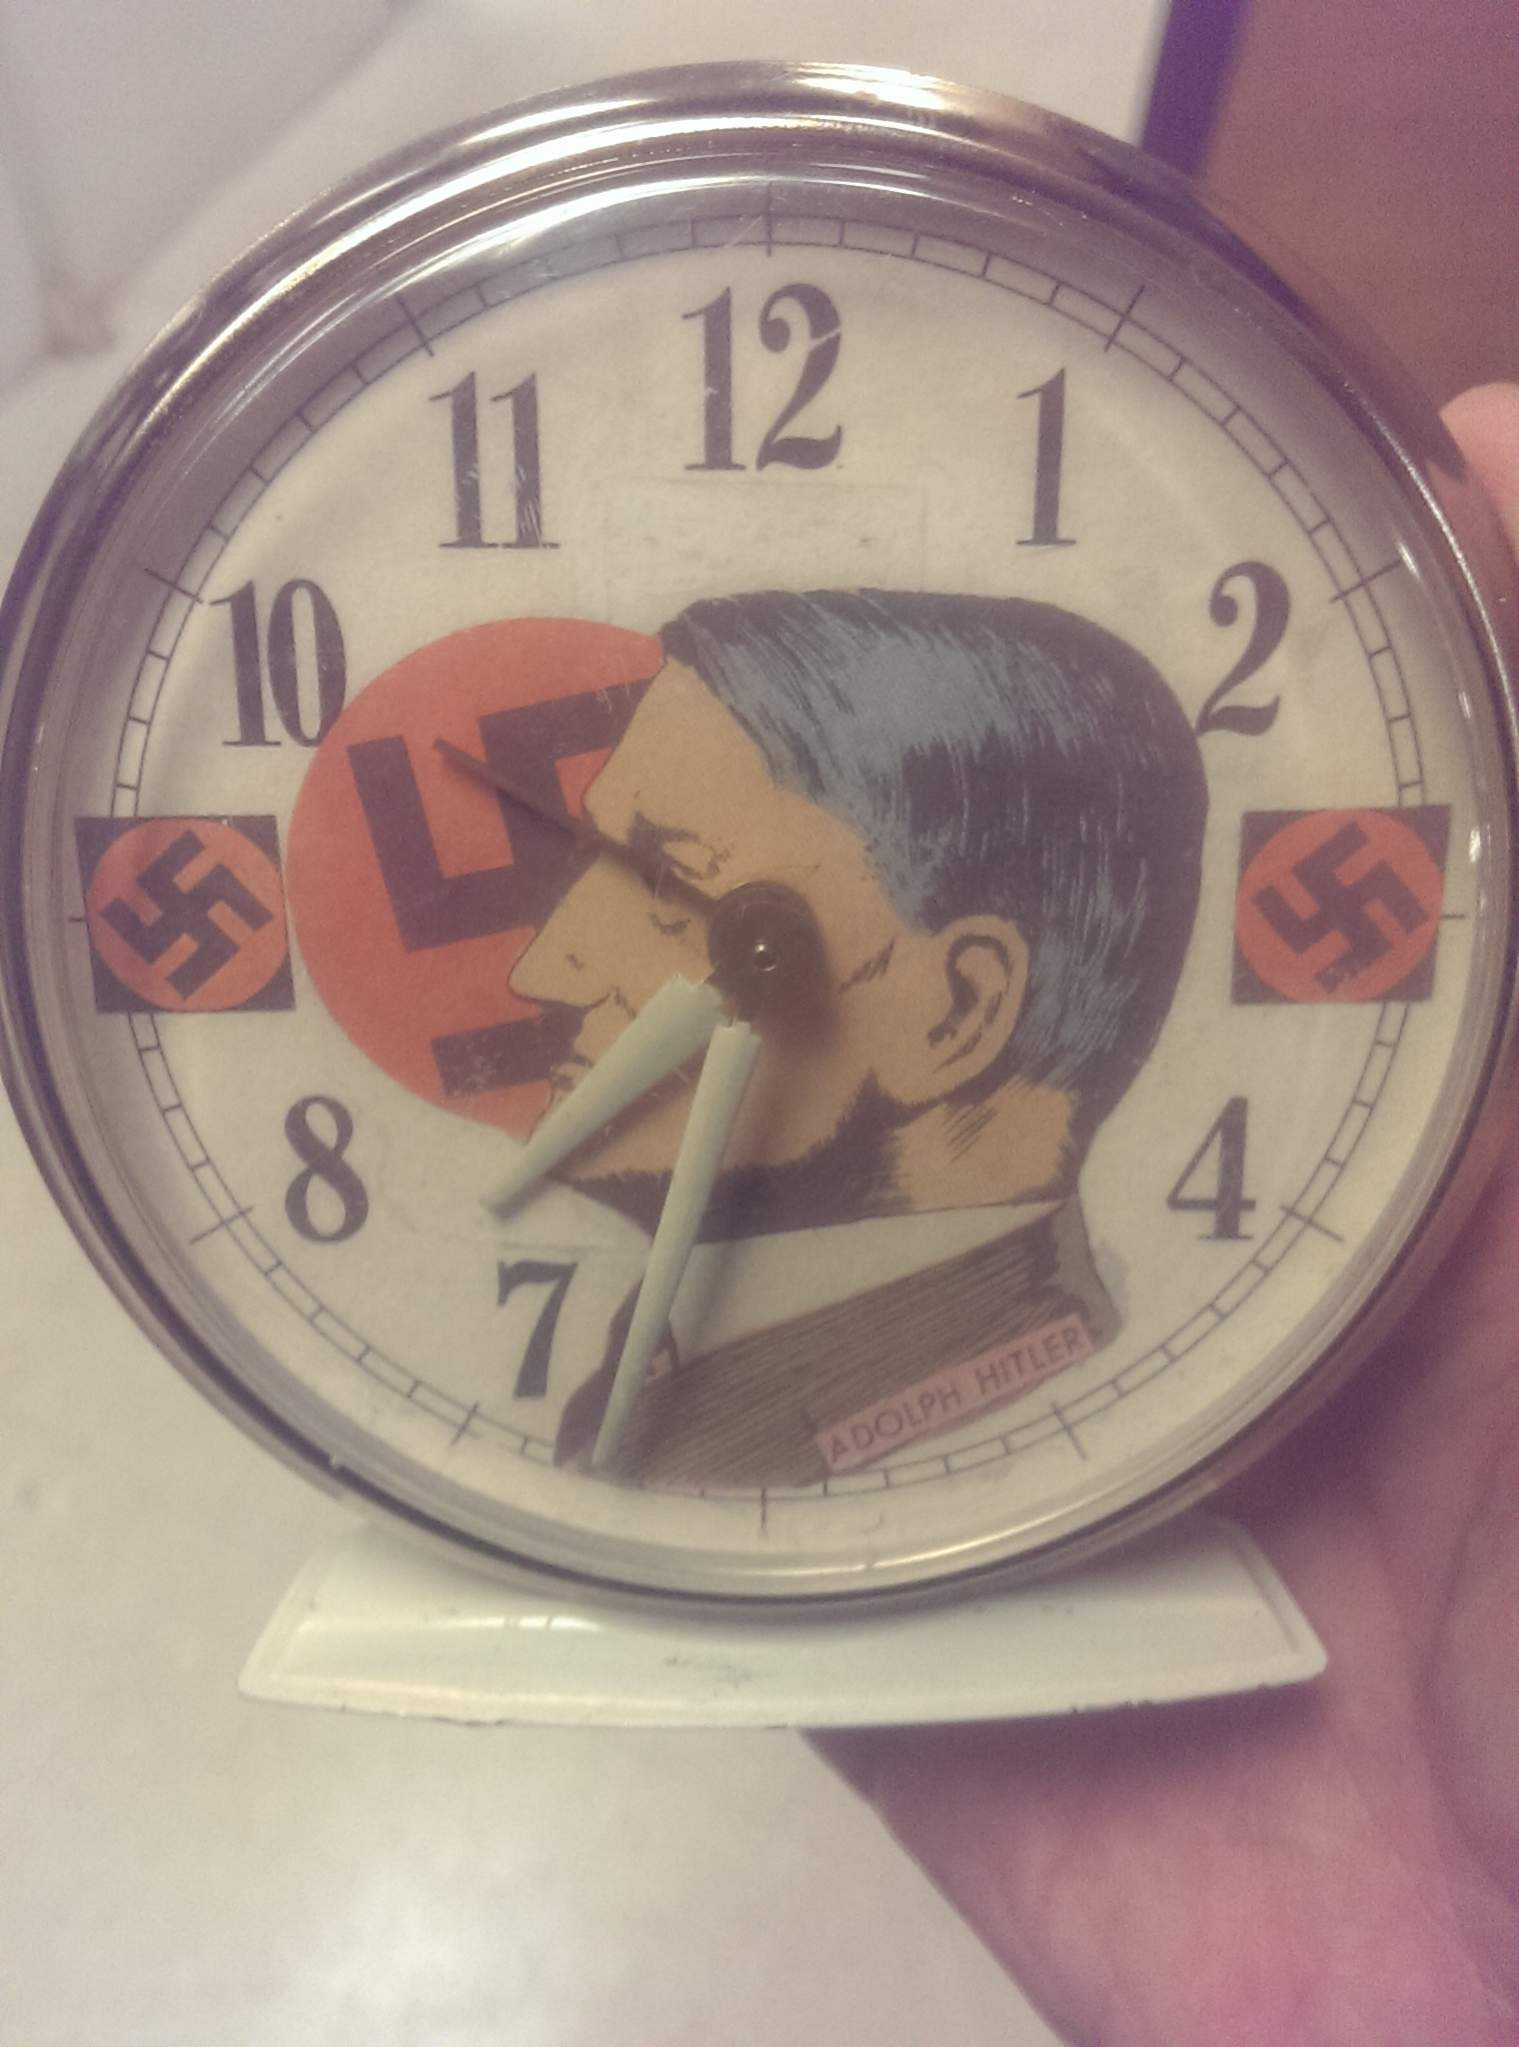 Sell Cell Phone >> Adolf Hitler Alarm Clock